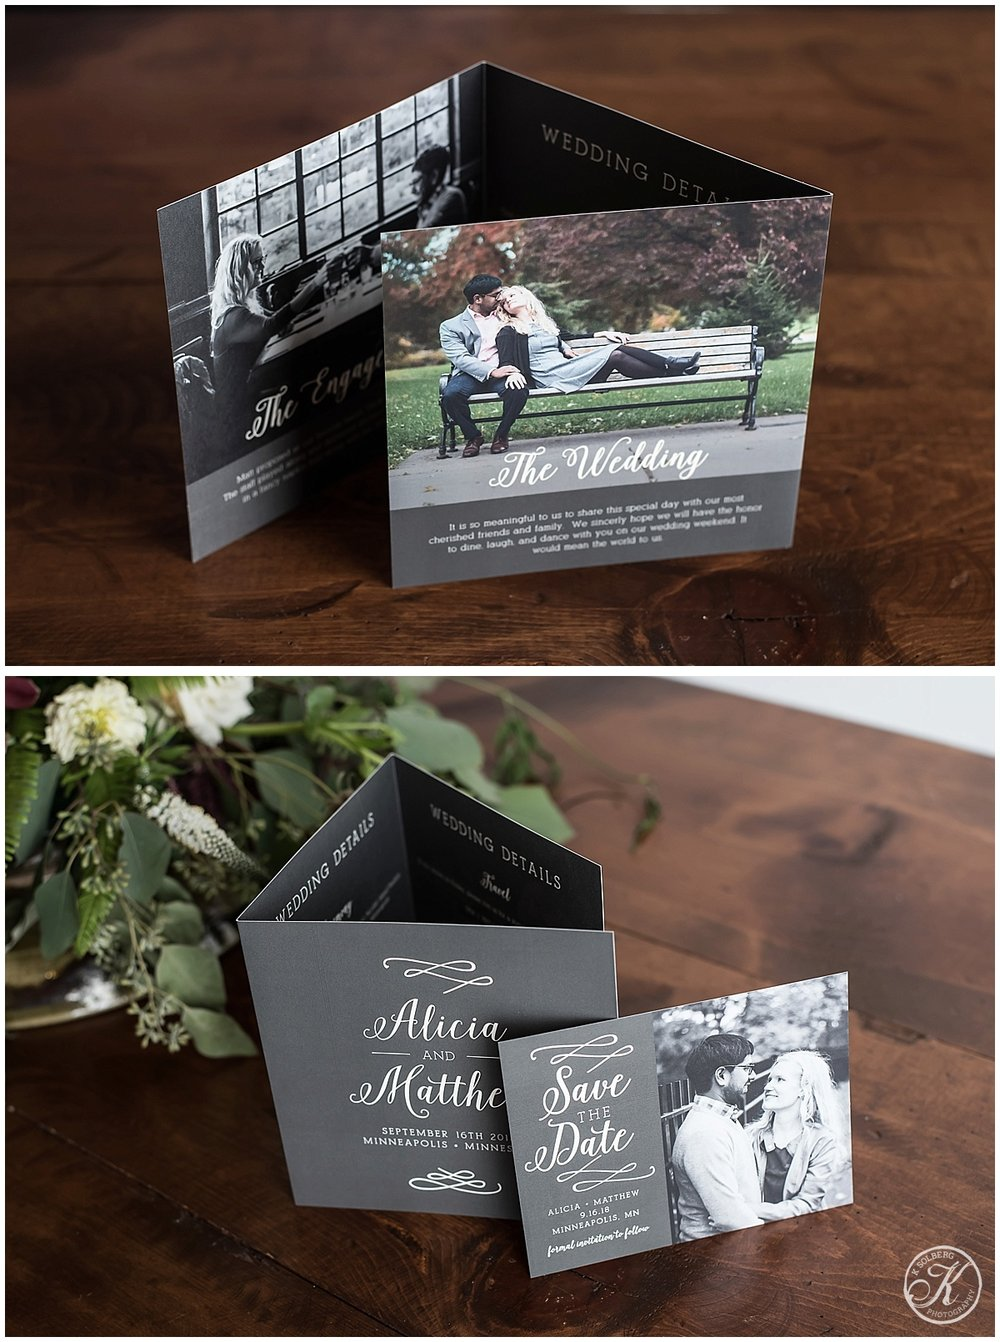 K Solberg Photography Basic Invite Samples